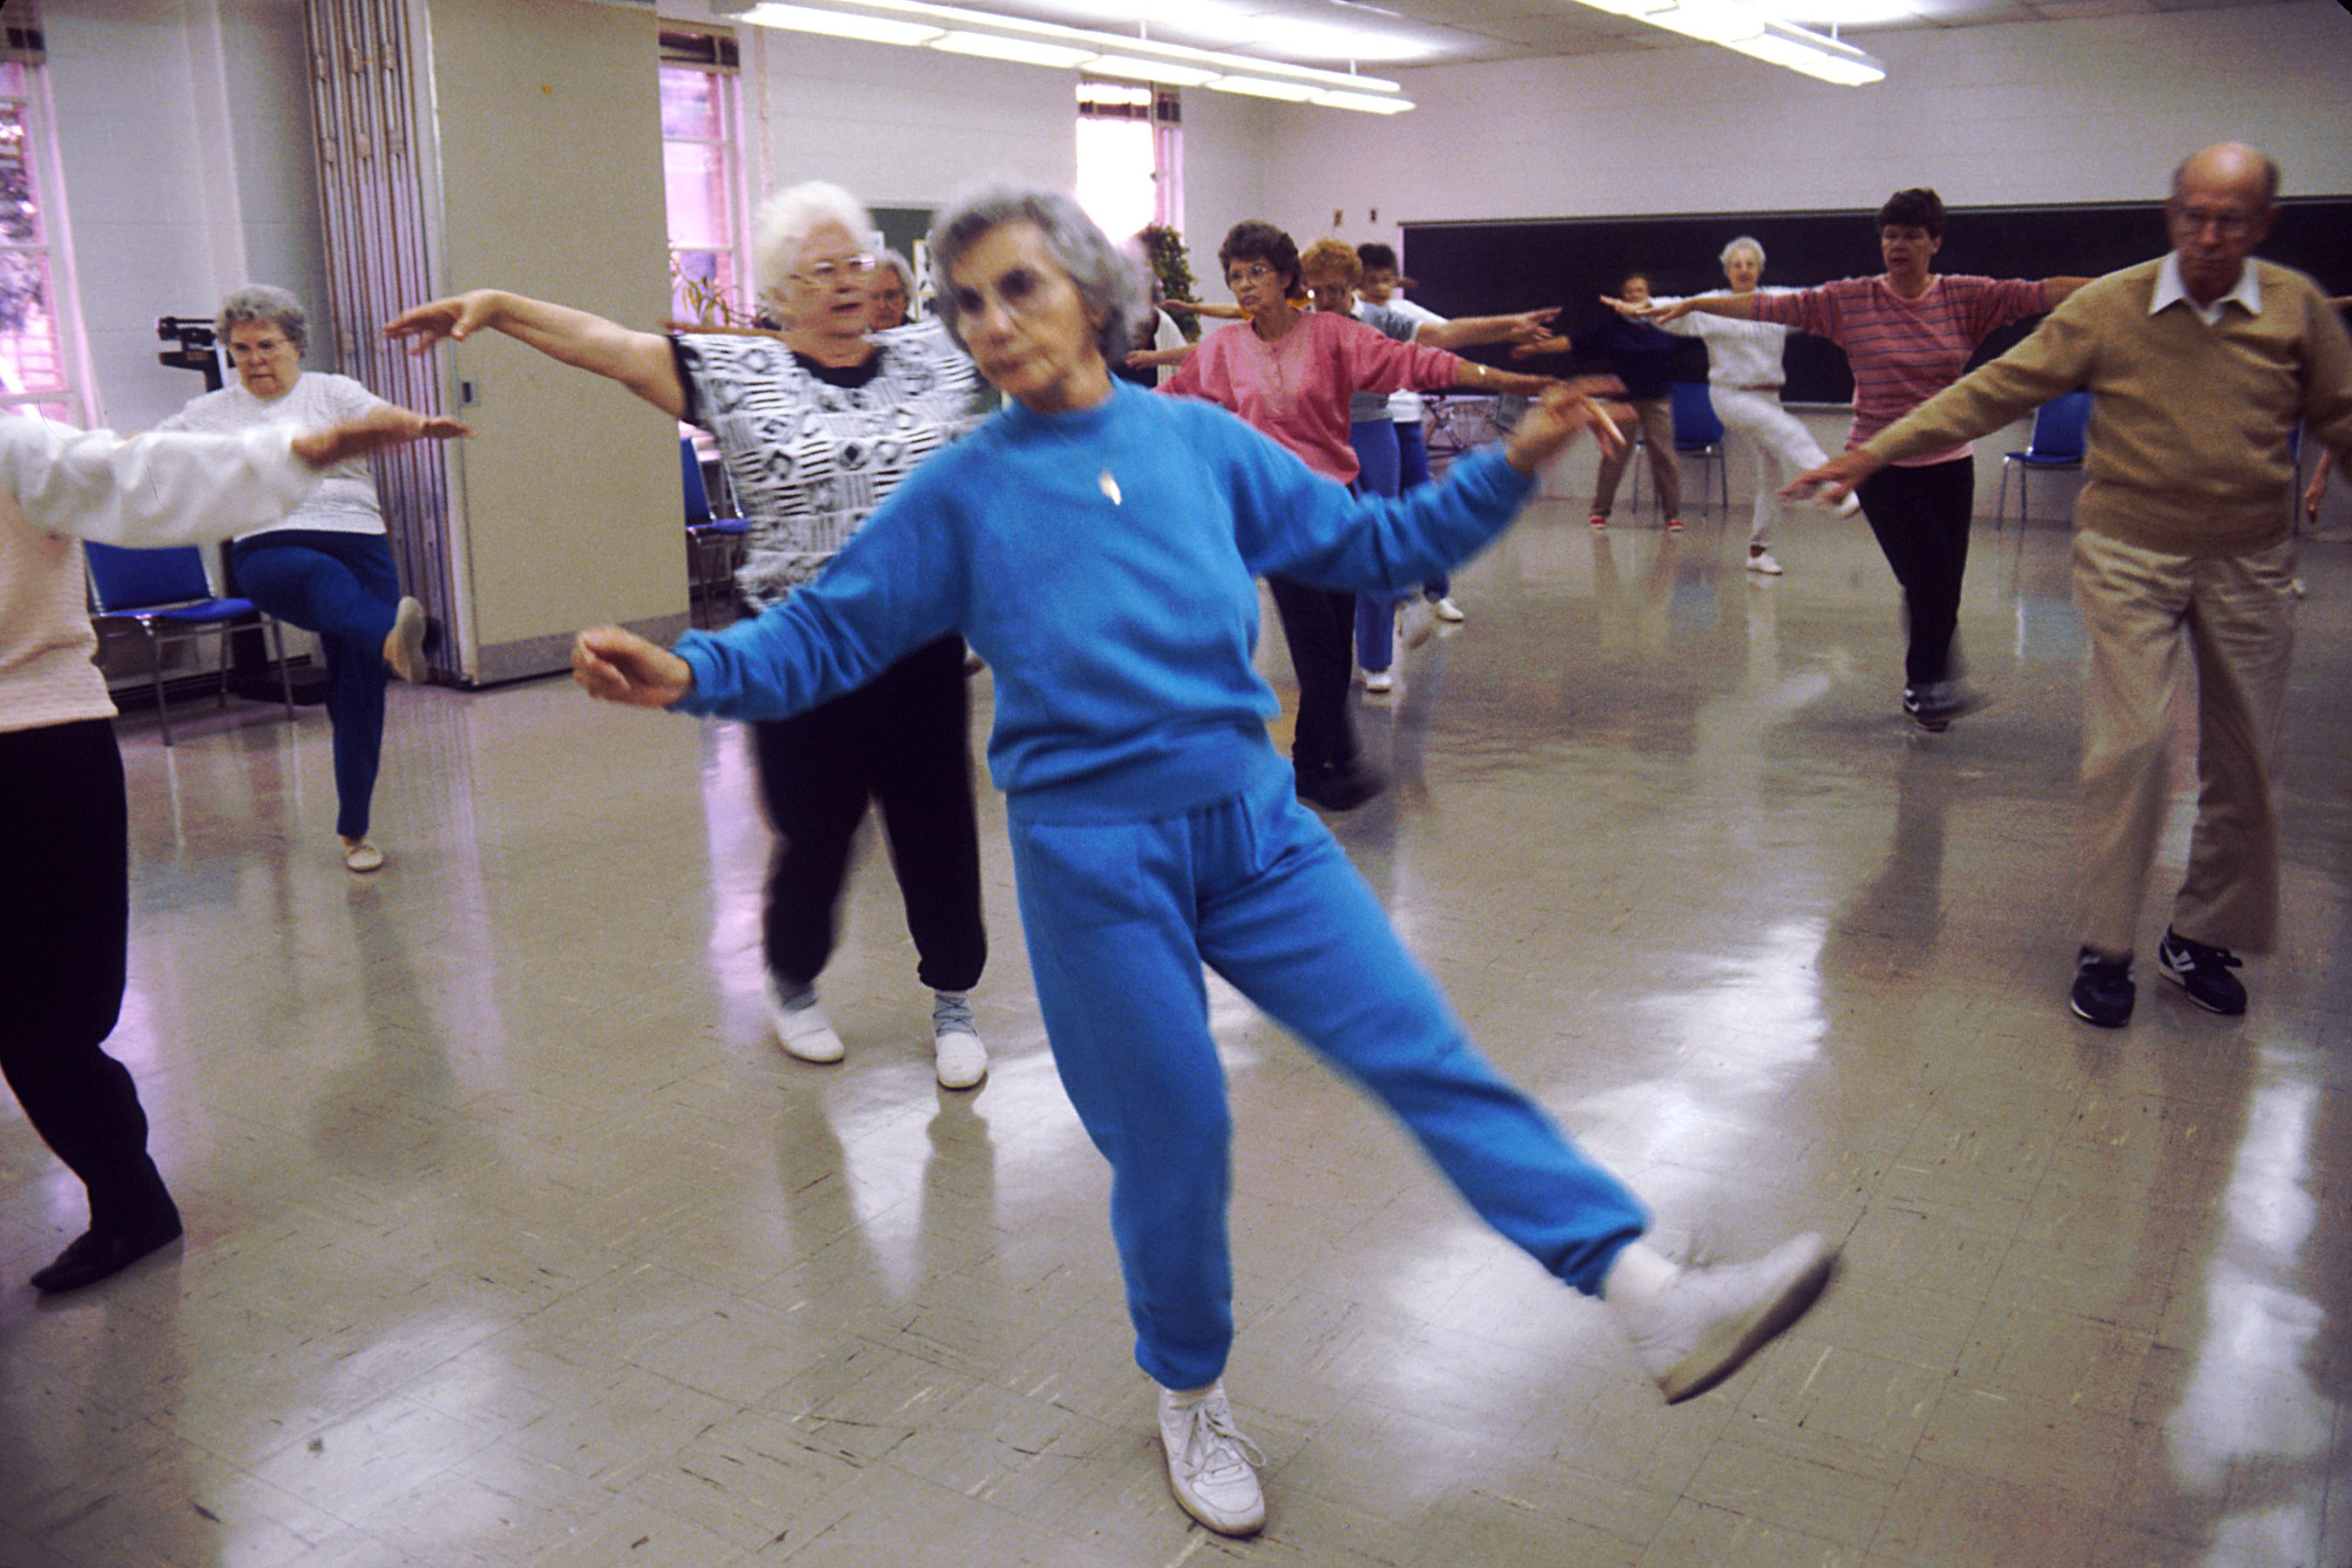 Seniors engaging in aerobics, not only to stay physical active, but mentally as well. Credit: Wikimedia Commons